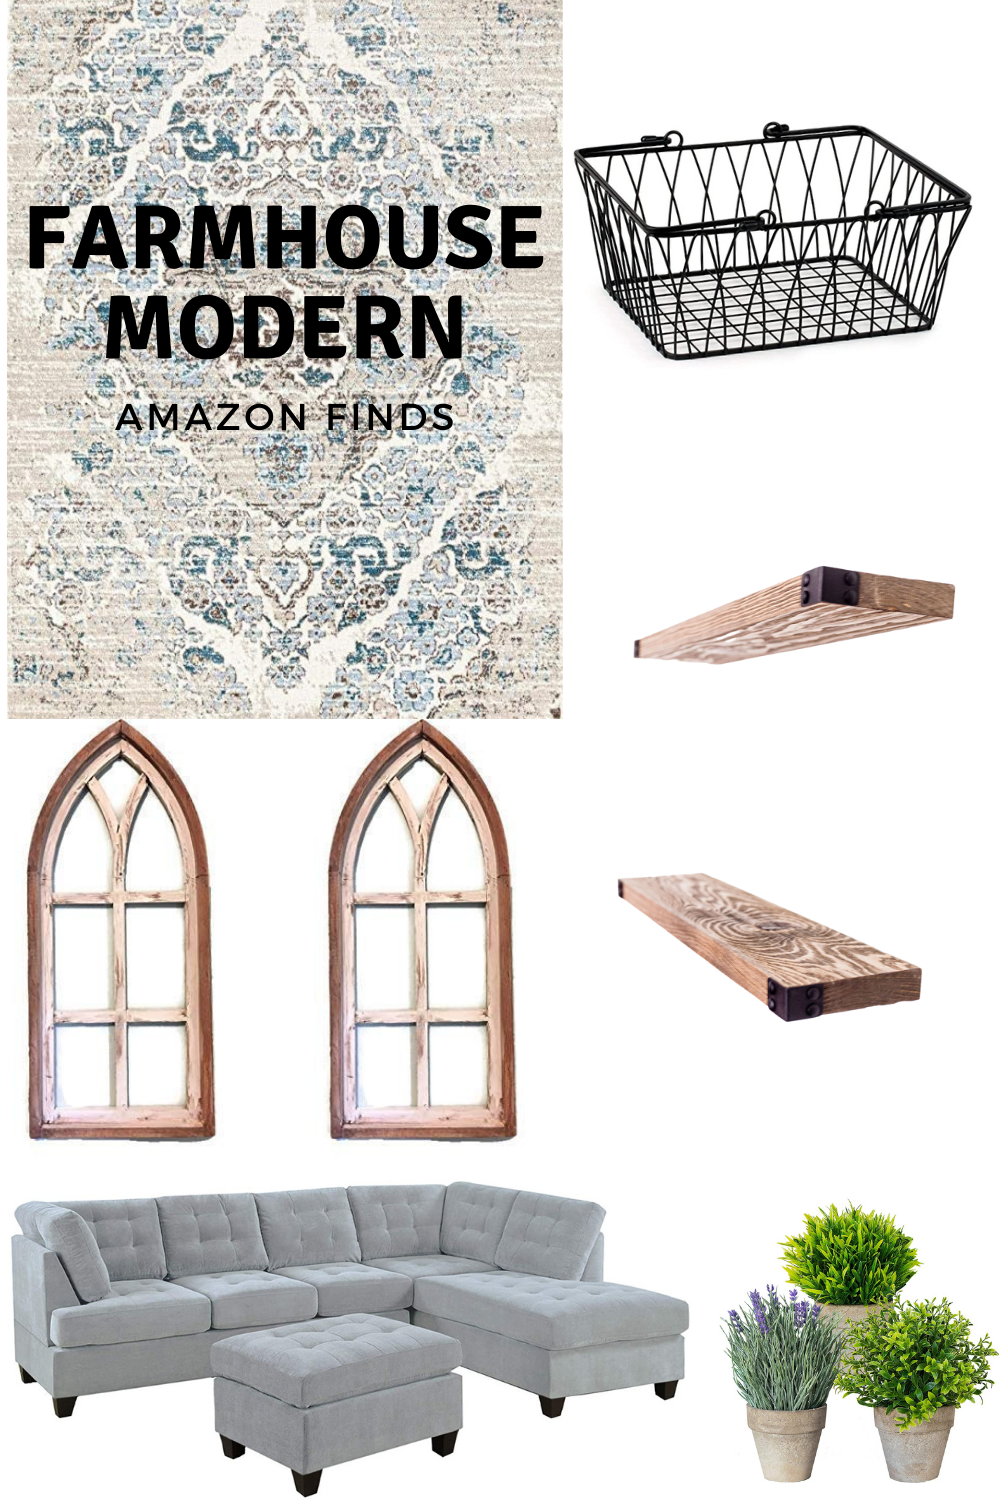 How To Create A Farmhouse Modern Living Room On Amazon